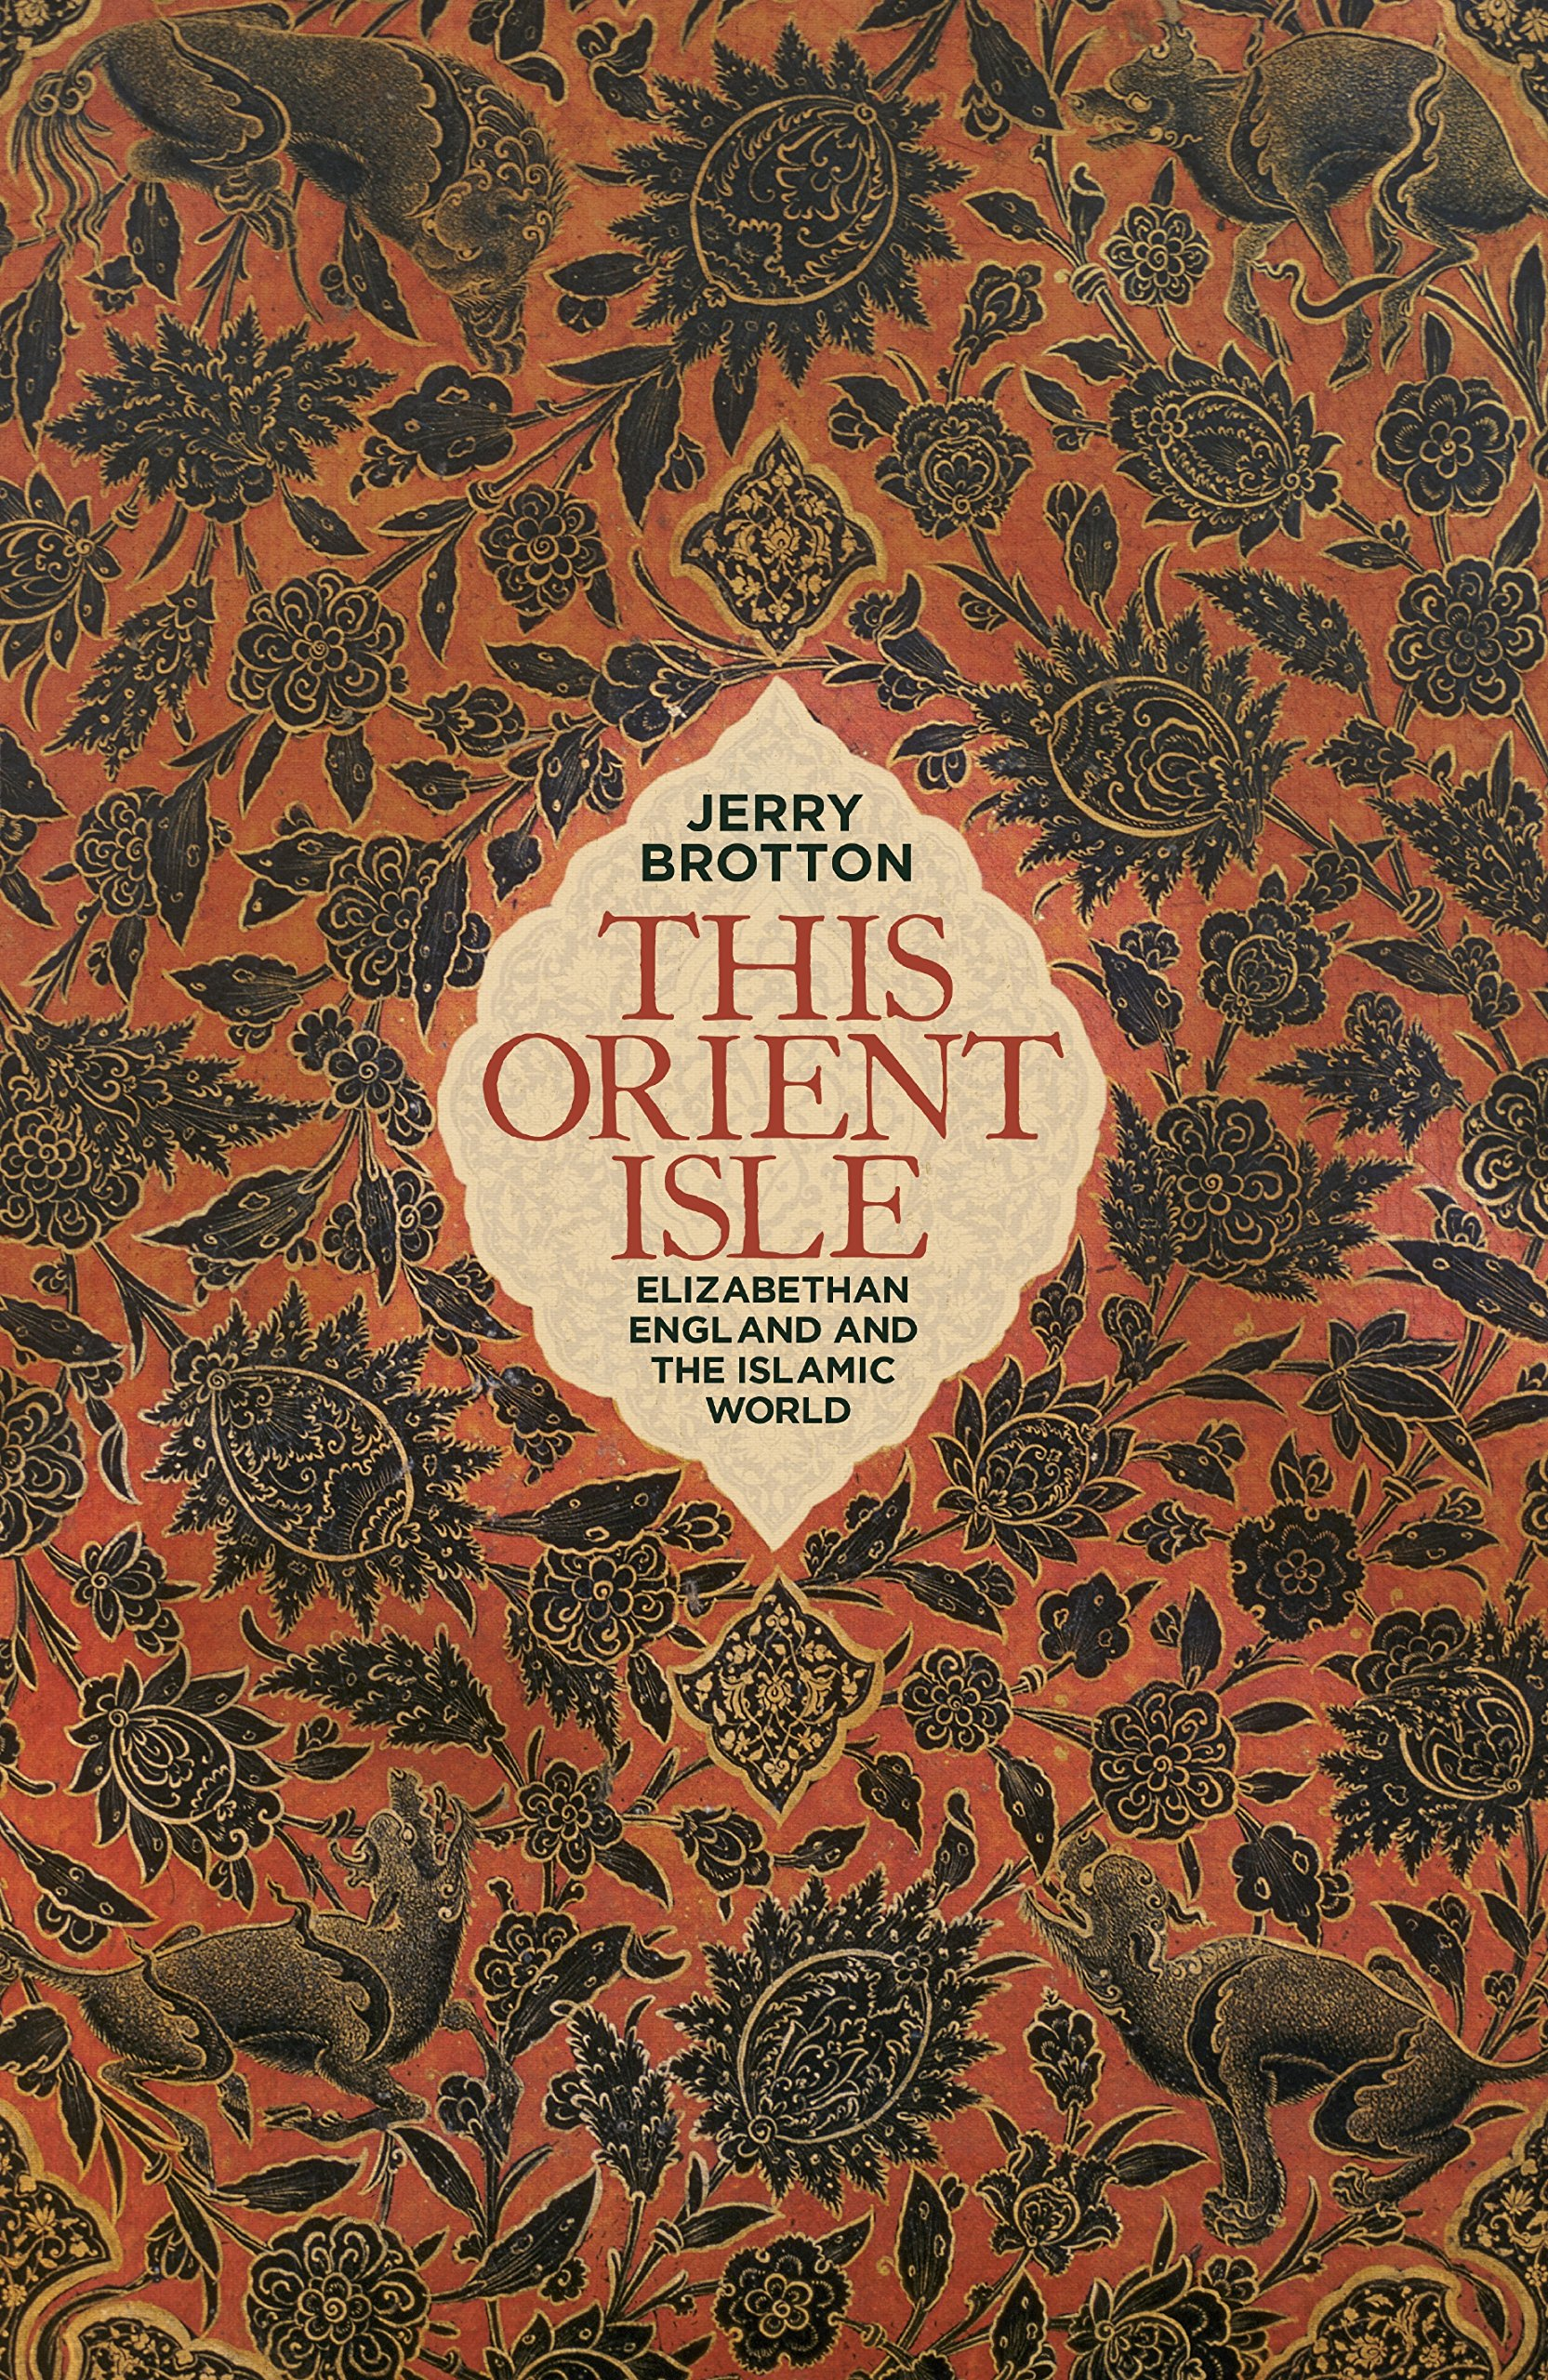 This Orient Isle: Elizabethan England and the Islamic World ...